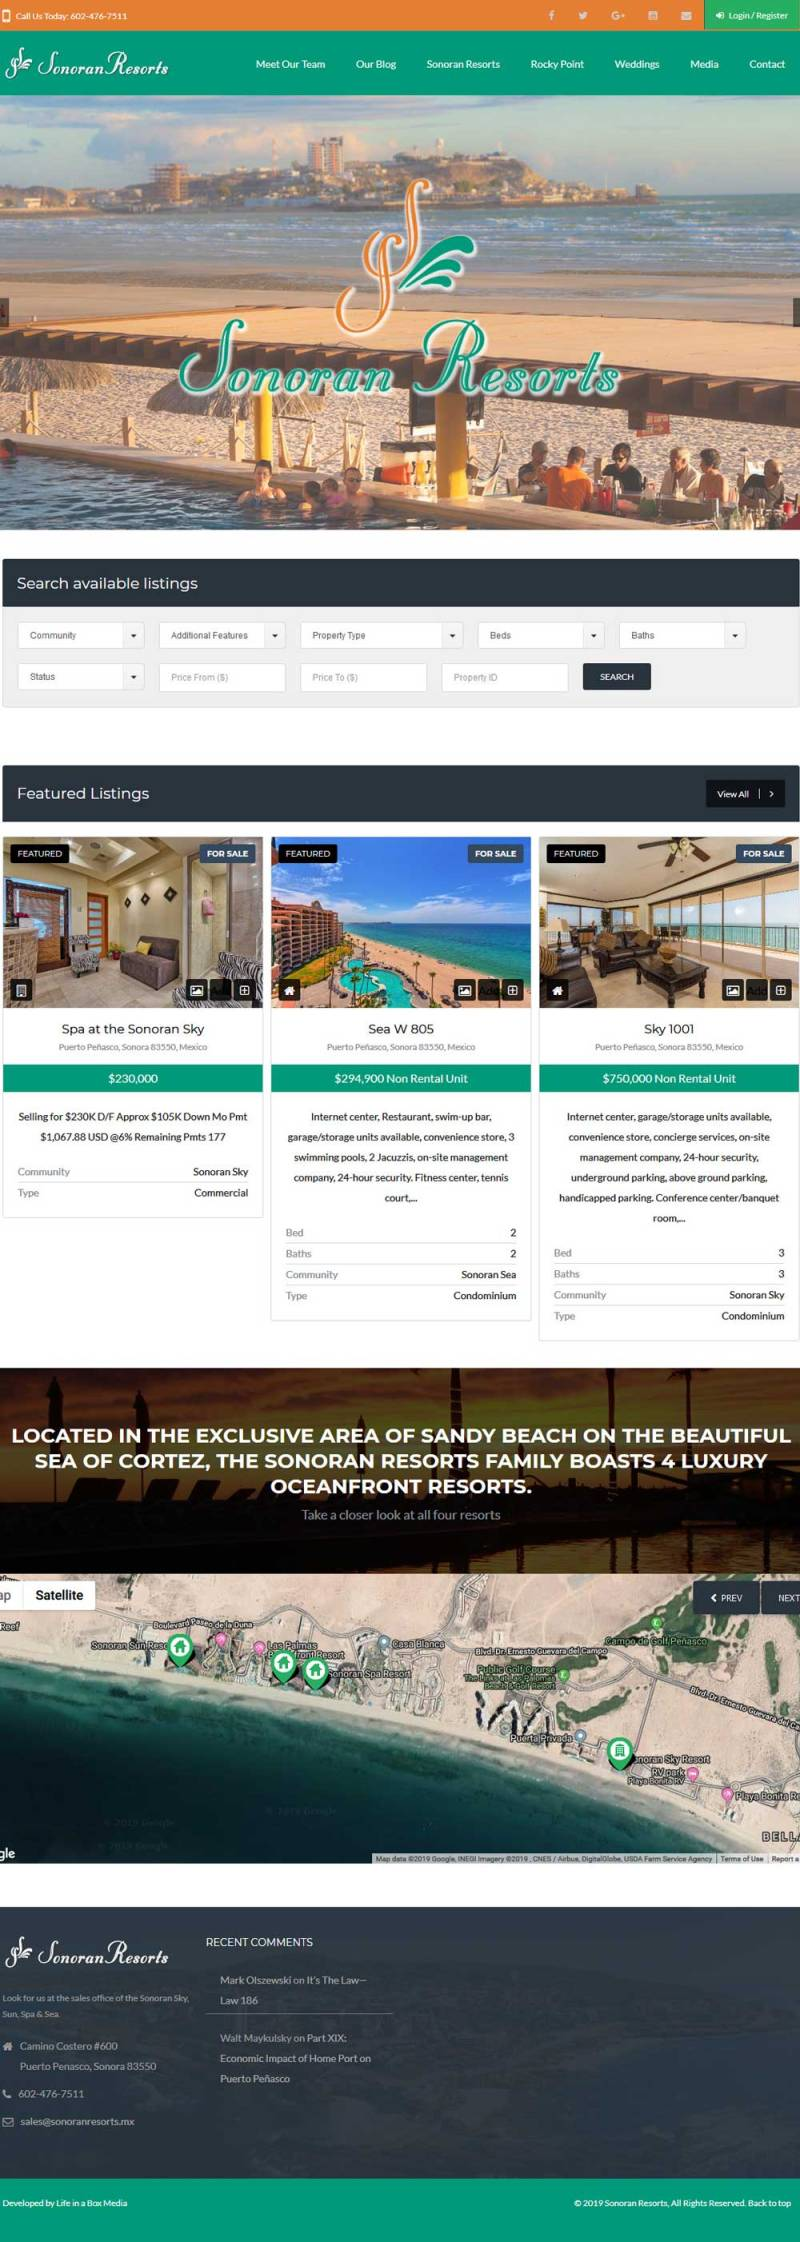 Sonoran Resorts and Condos Real Estate in Puerto Penasco (Rocky Point Mexico). Click here to visit the Sonoran Resorts website.